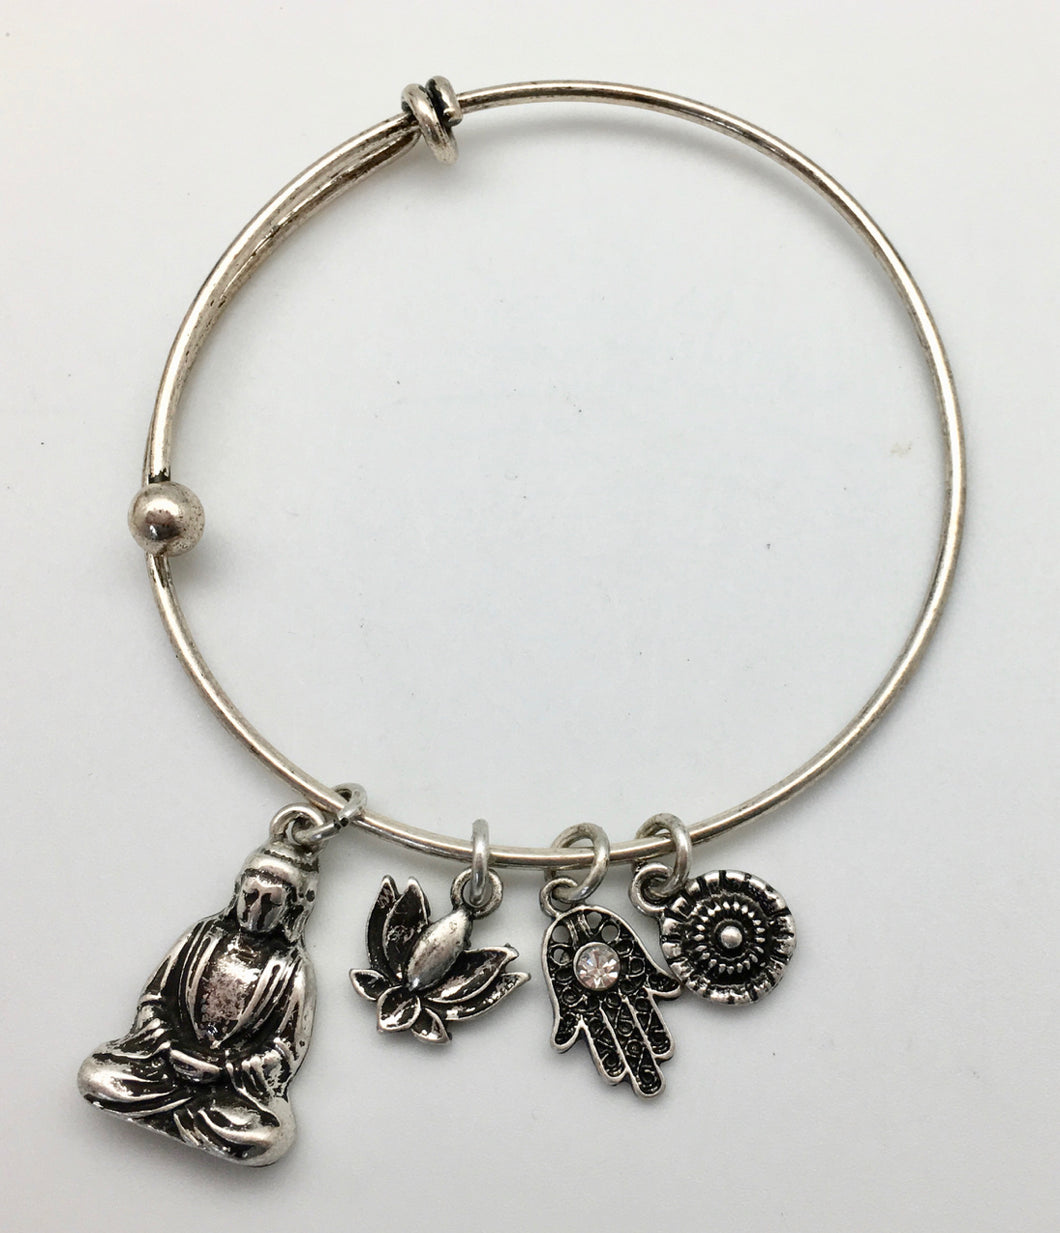 Spiritual Charm Bangle Bracelet - Buddha, Hamsa and Lotus